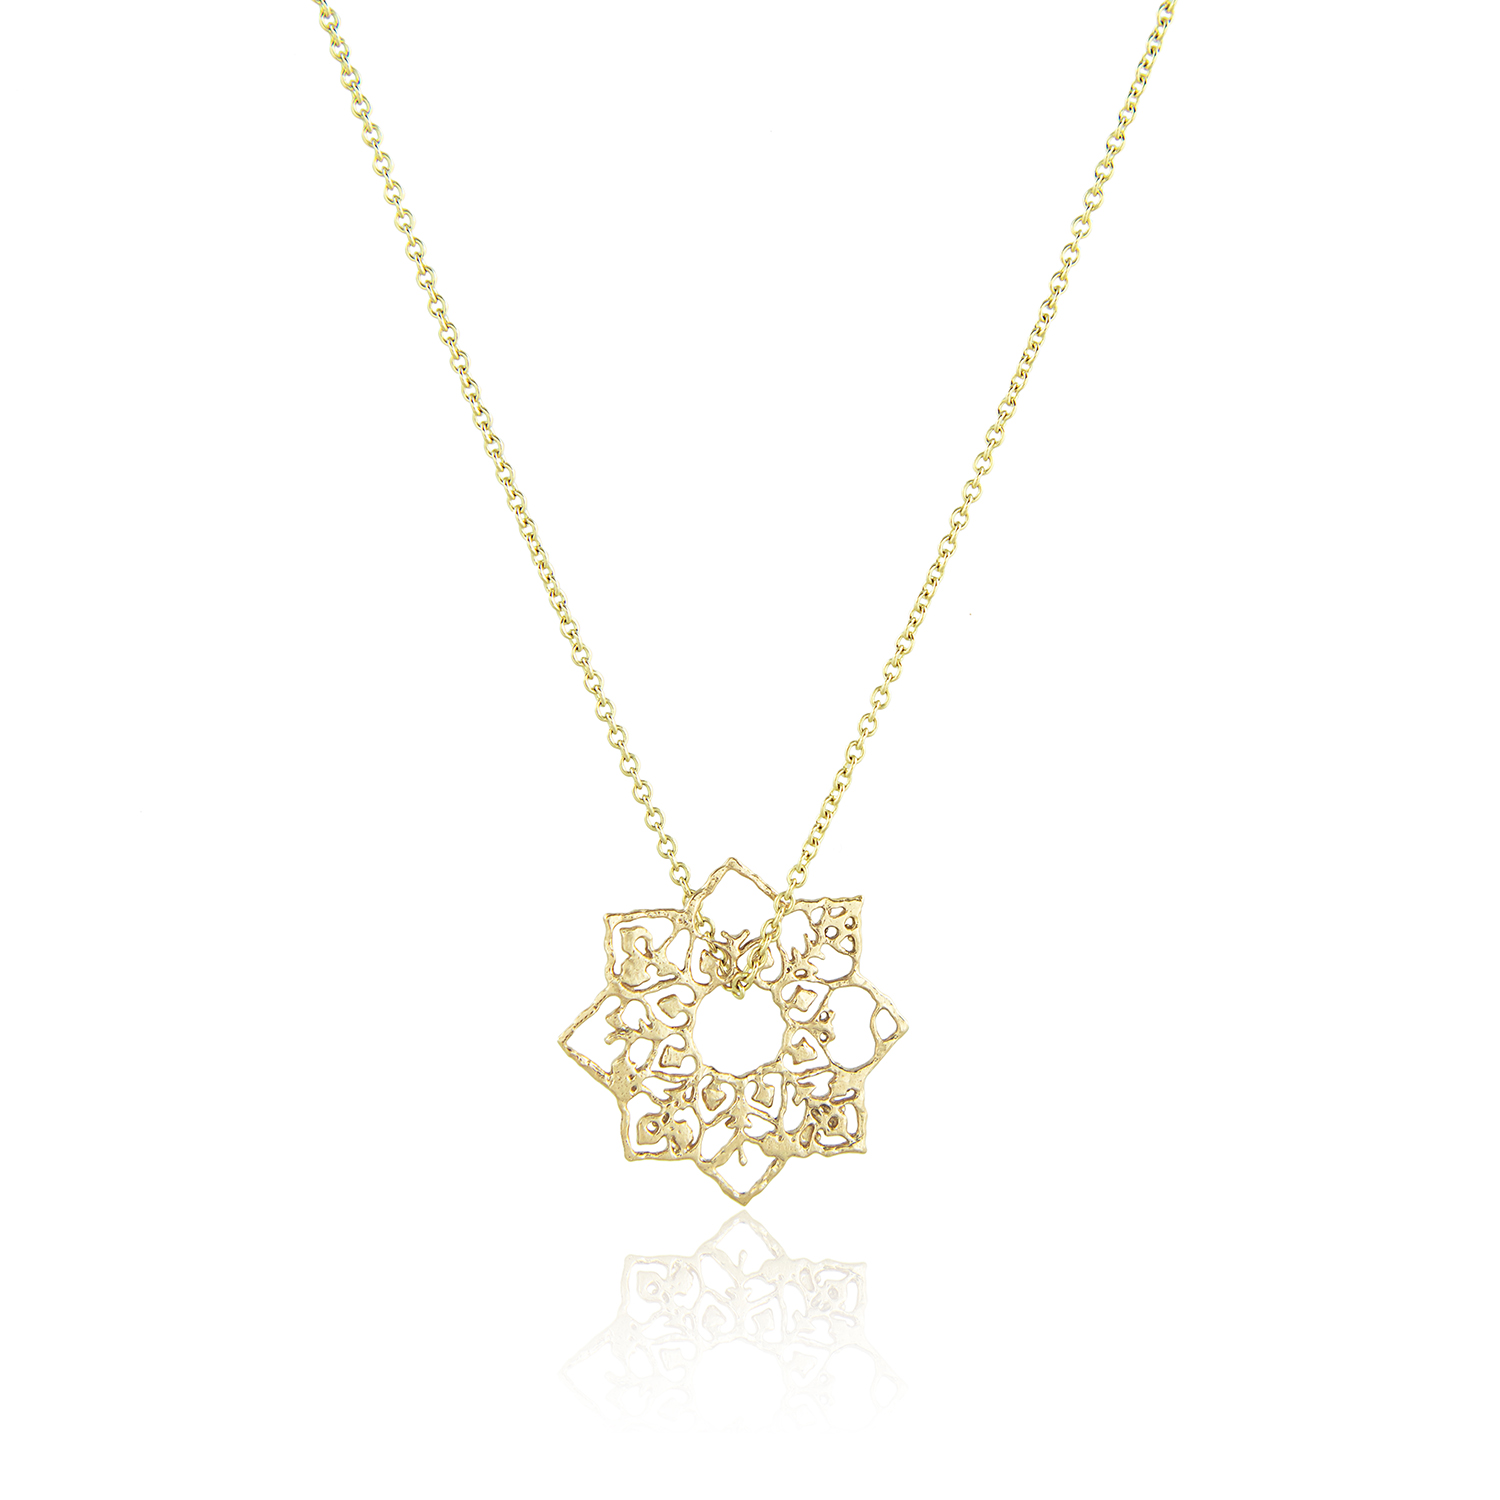 Natalie Perry Jewellery, Mandala Necklace